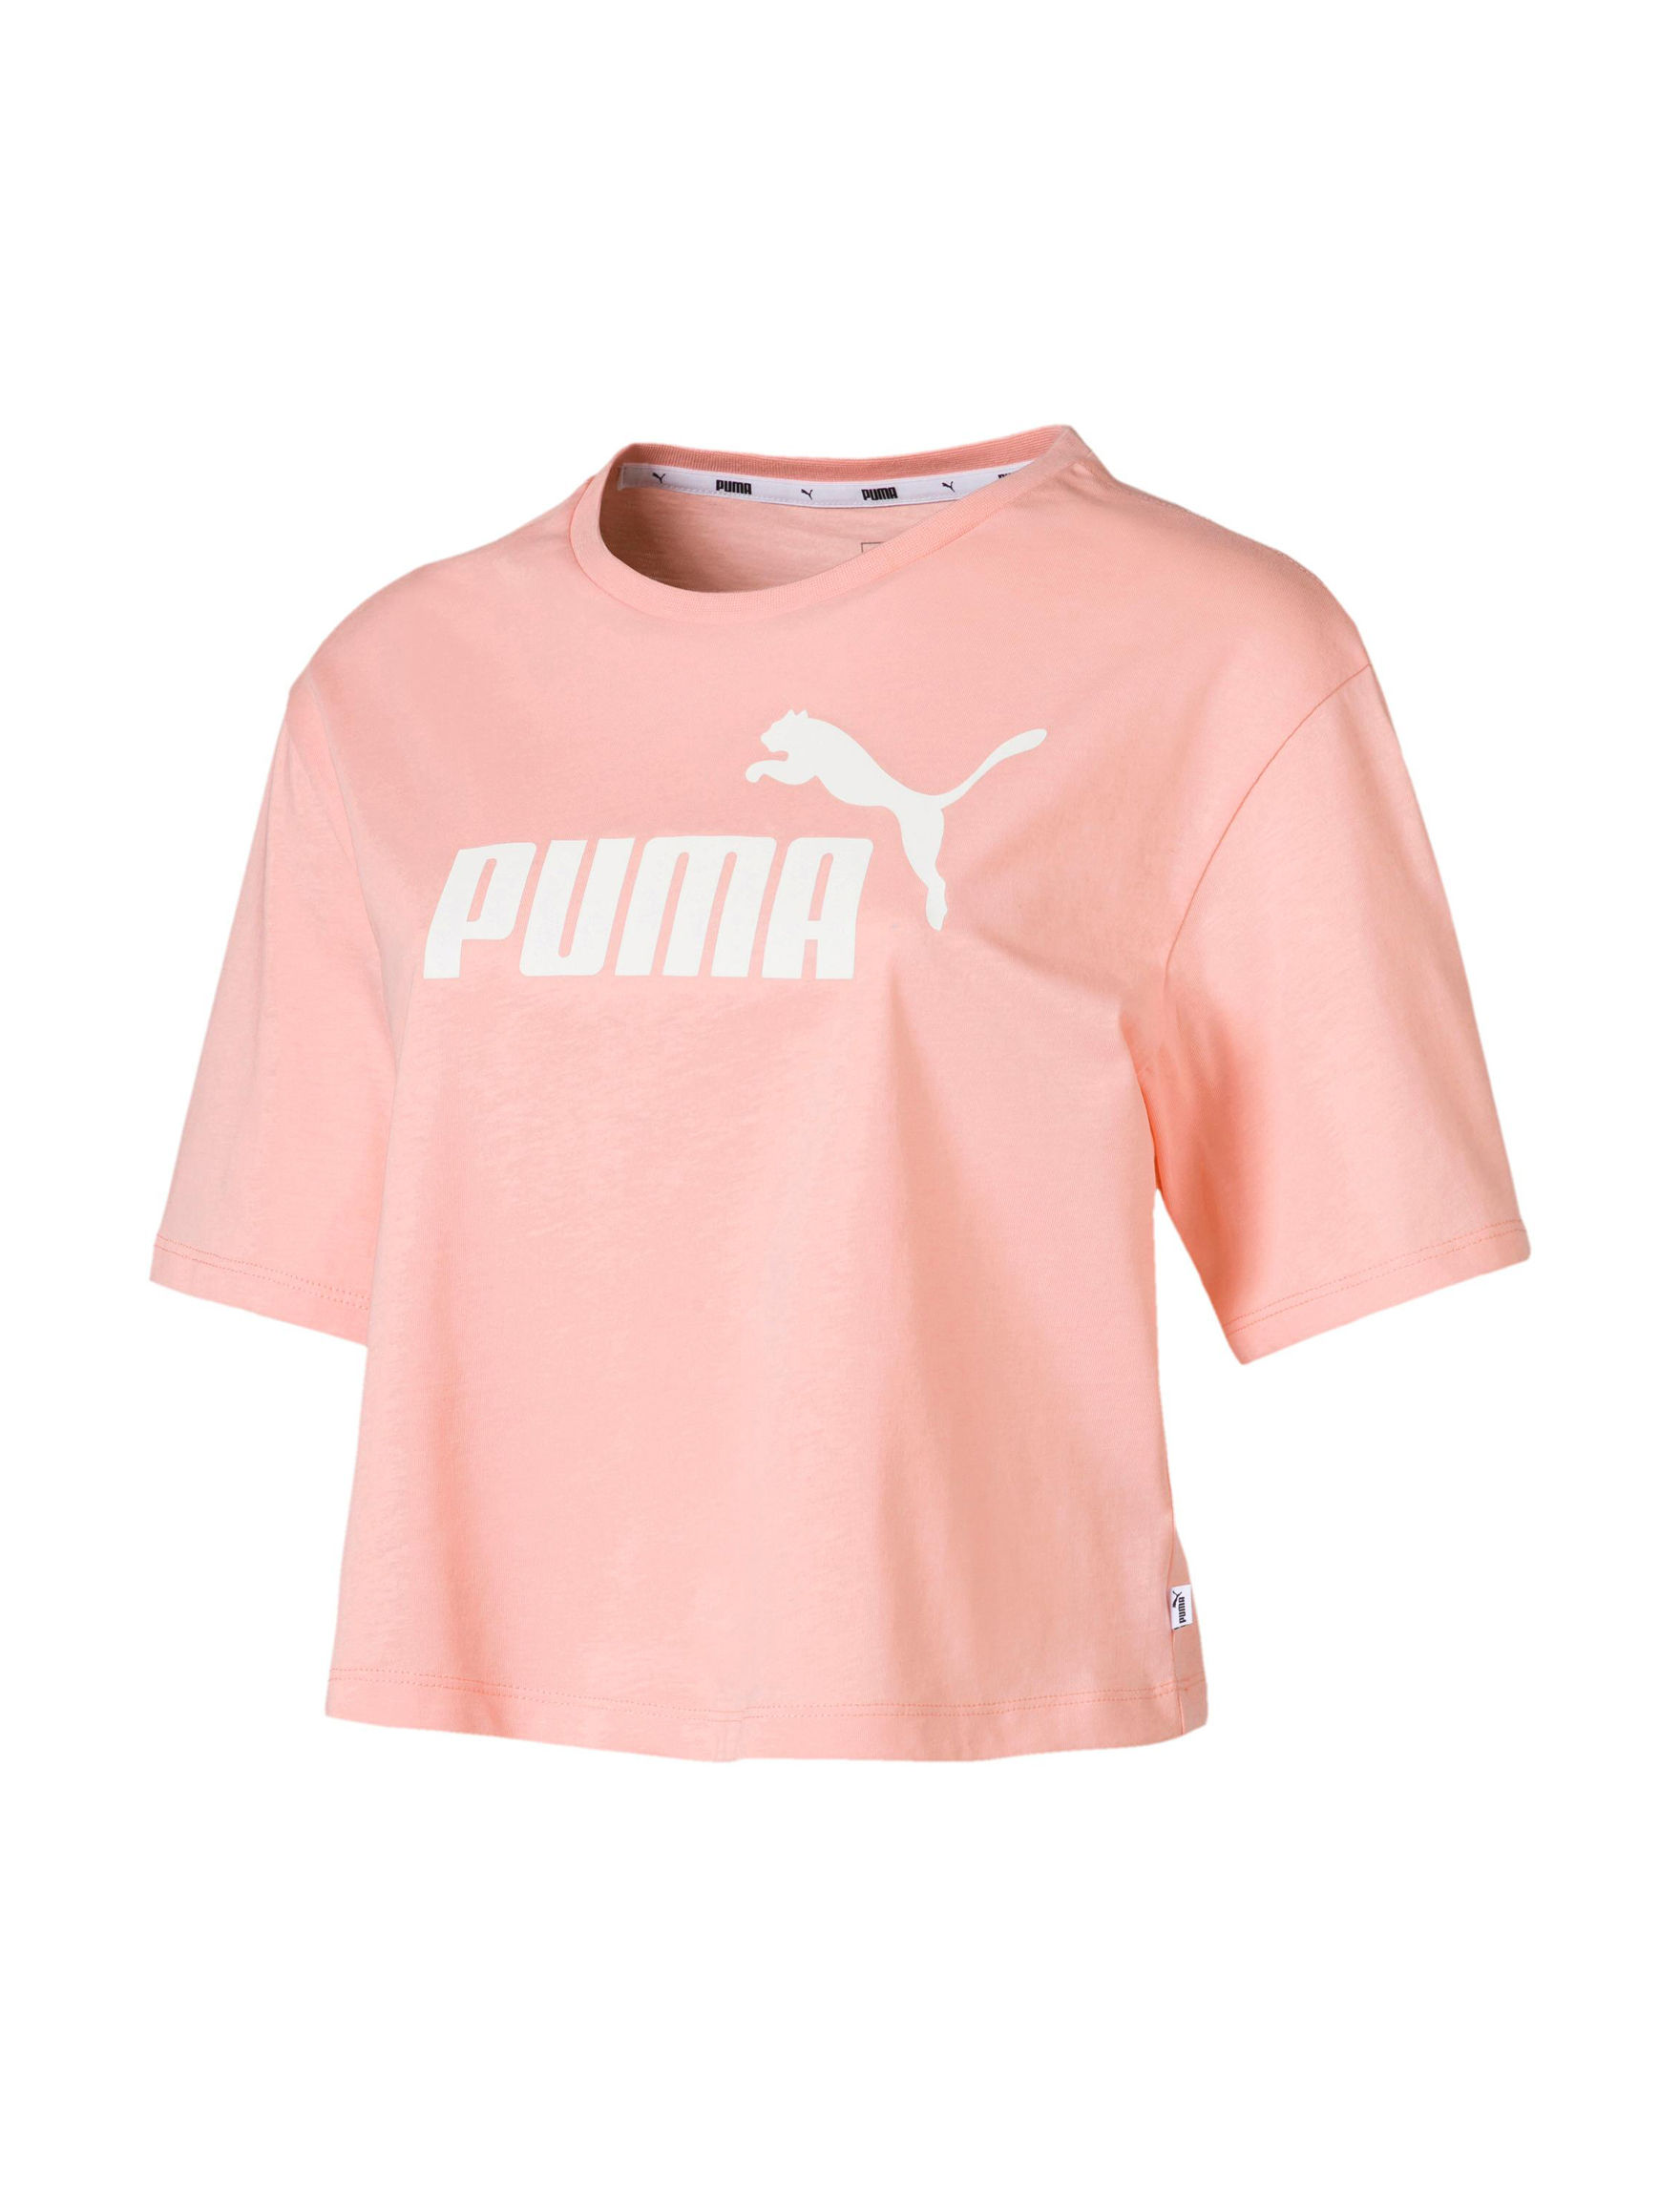 Puma Pink / White Tees & Tanks